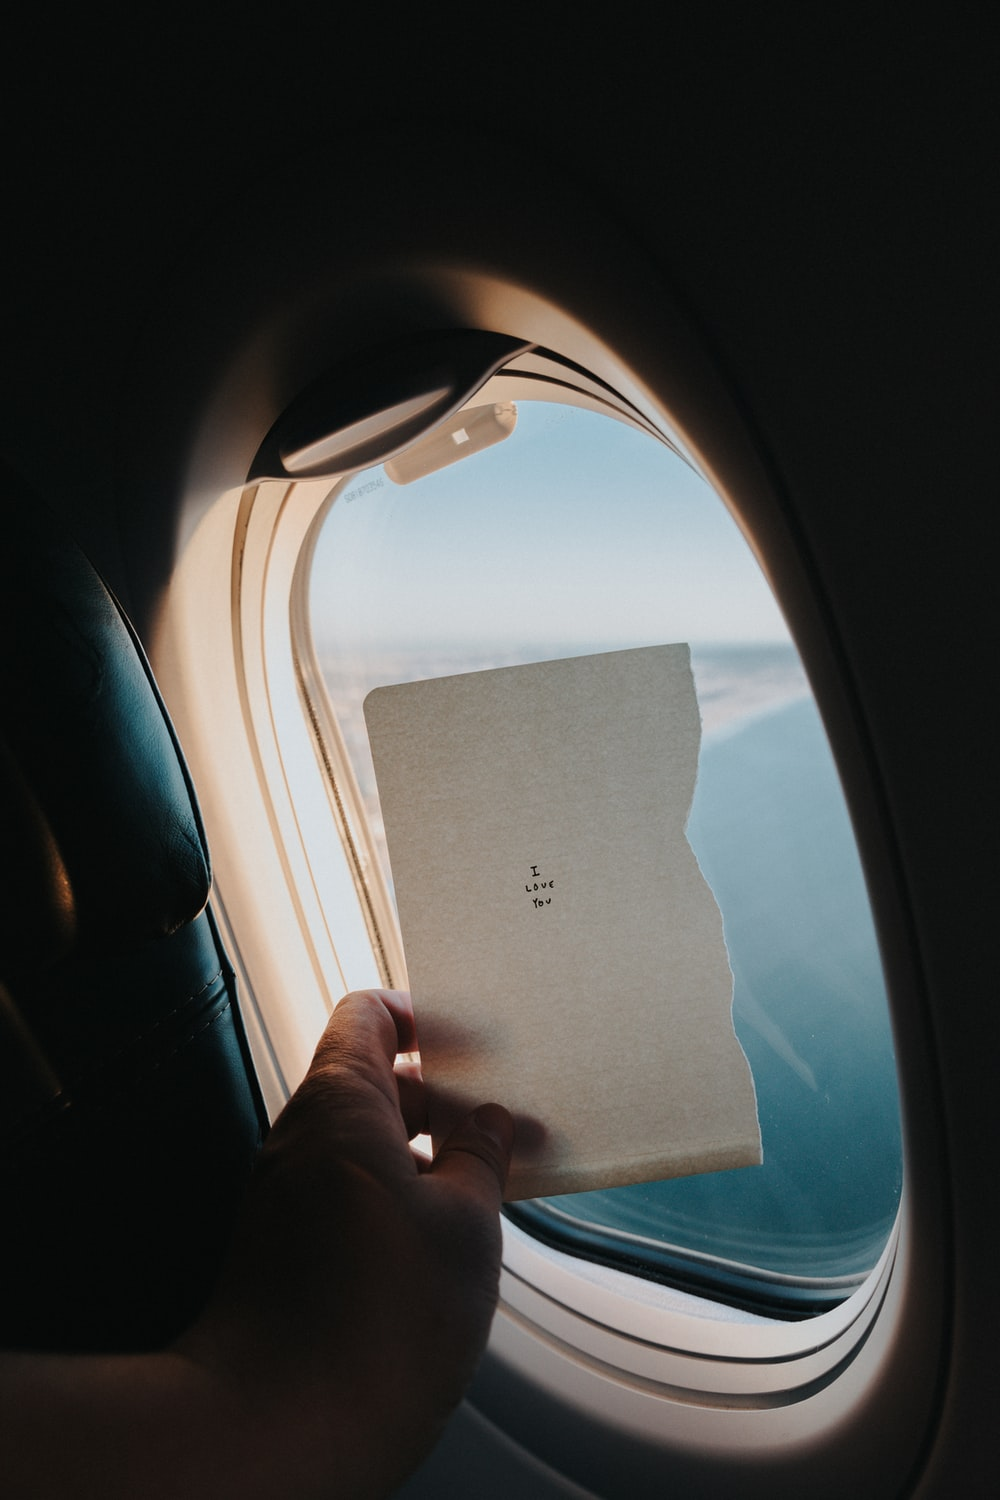 100 Love Letter Pictures Hd Download Free Images On Unsplash